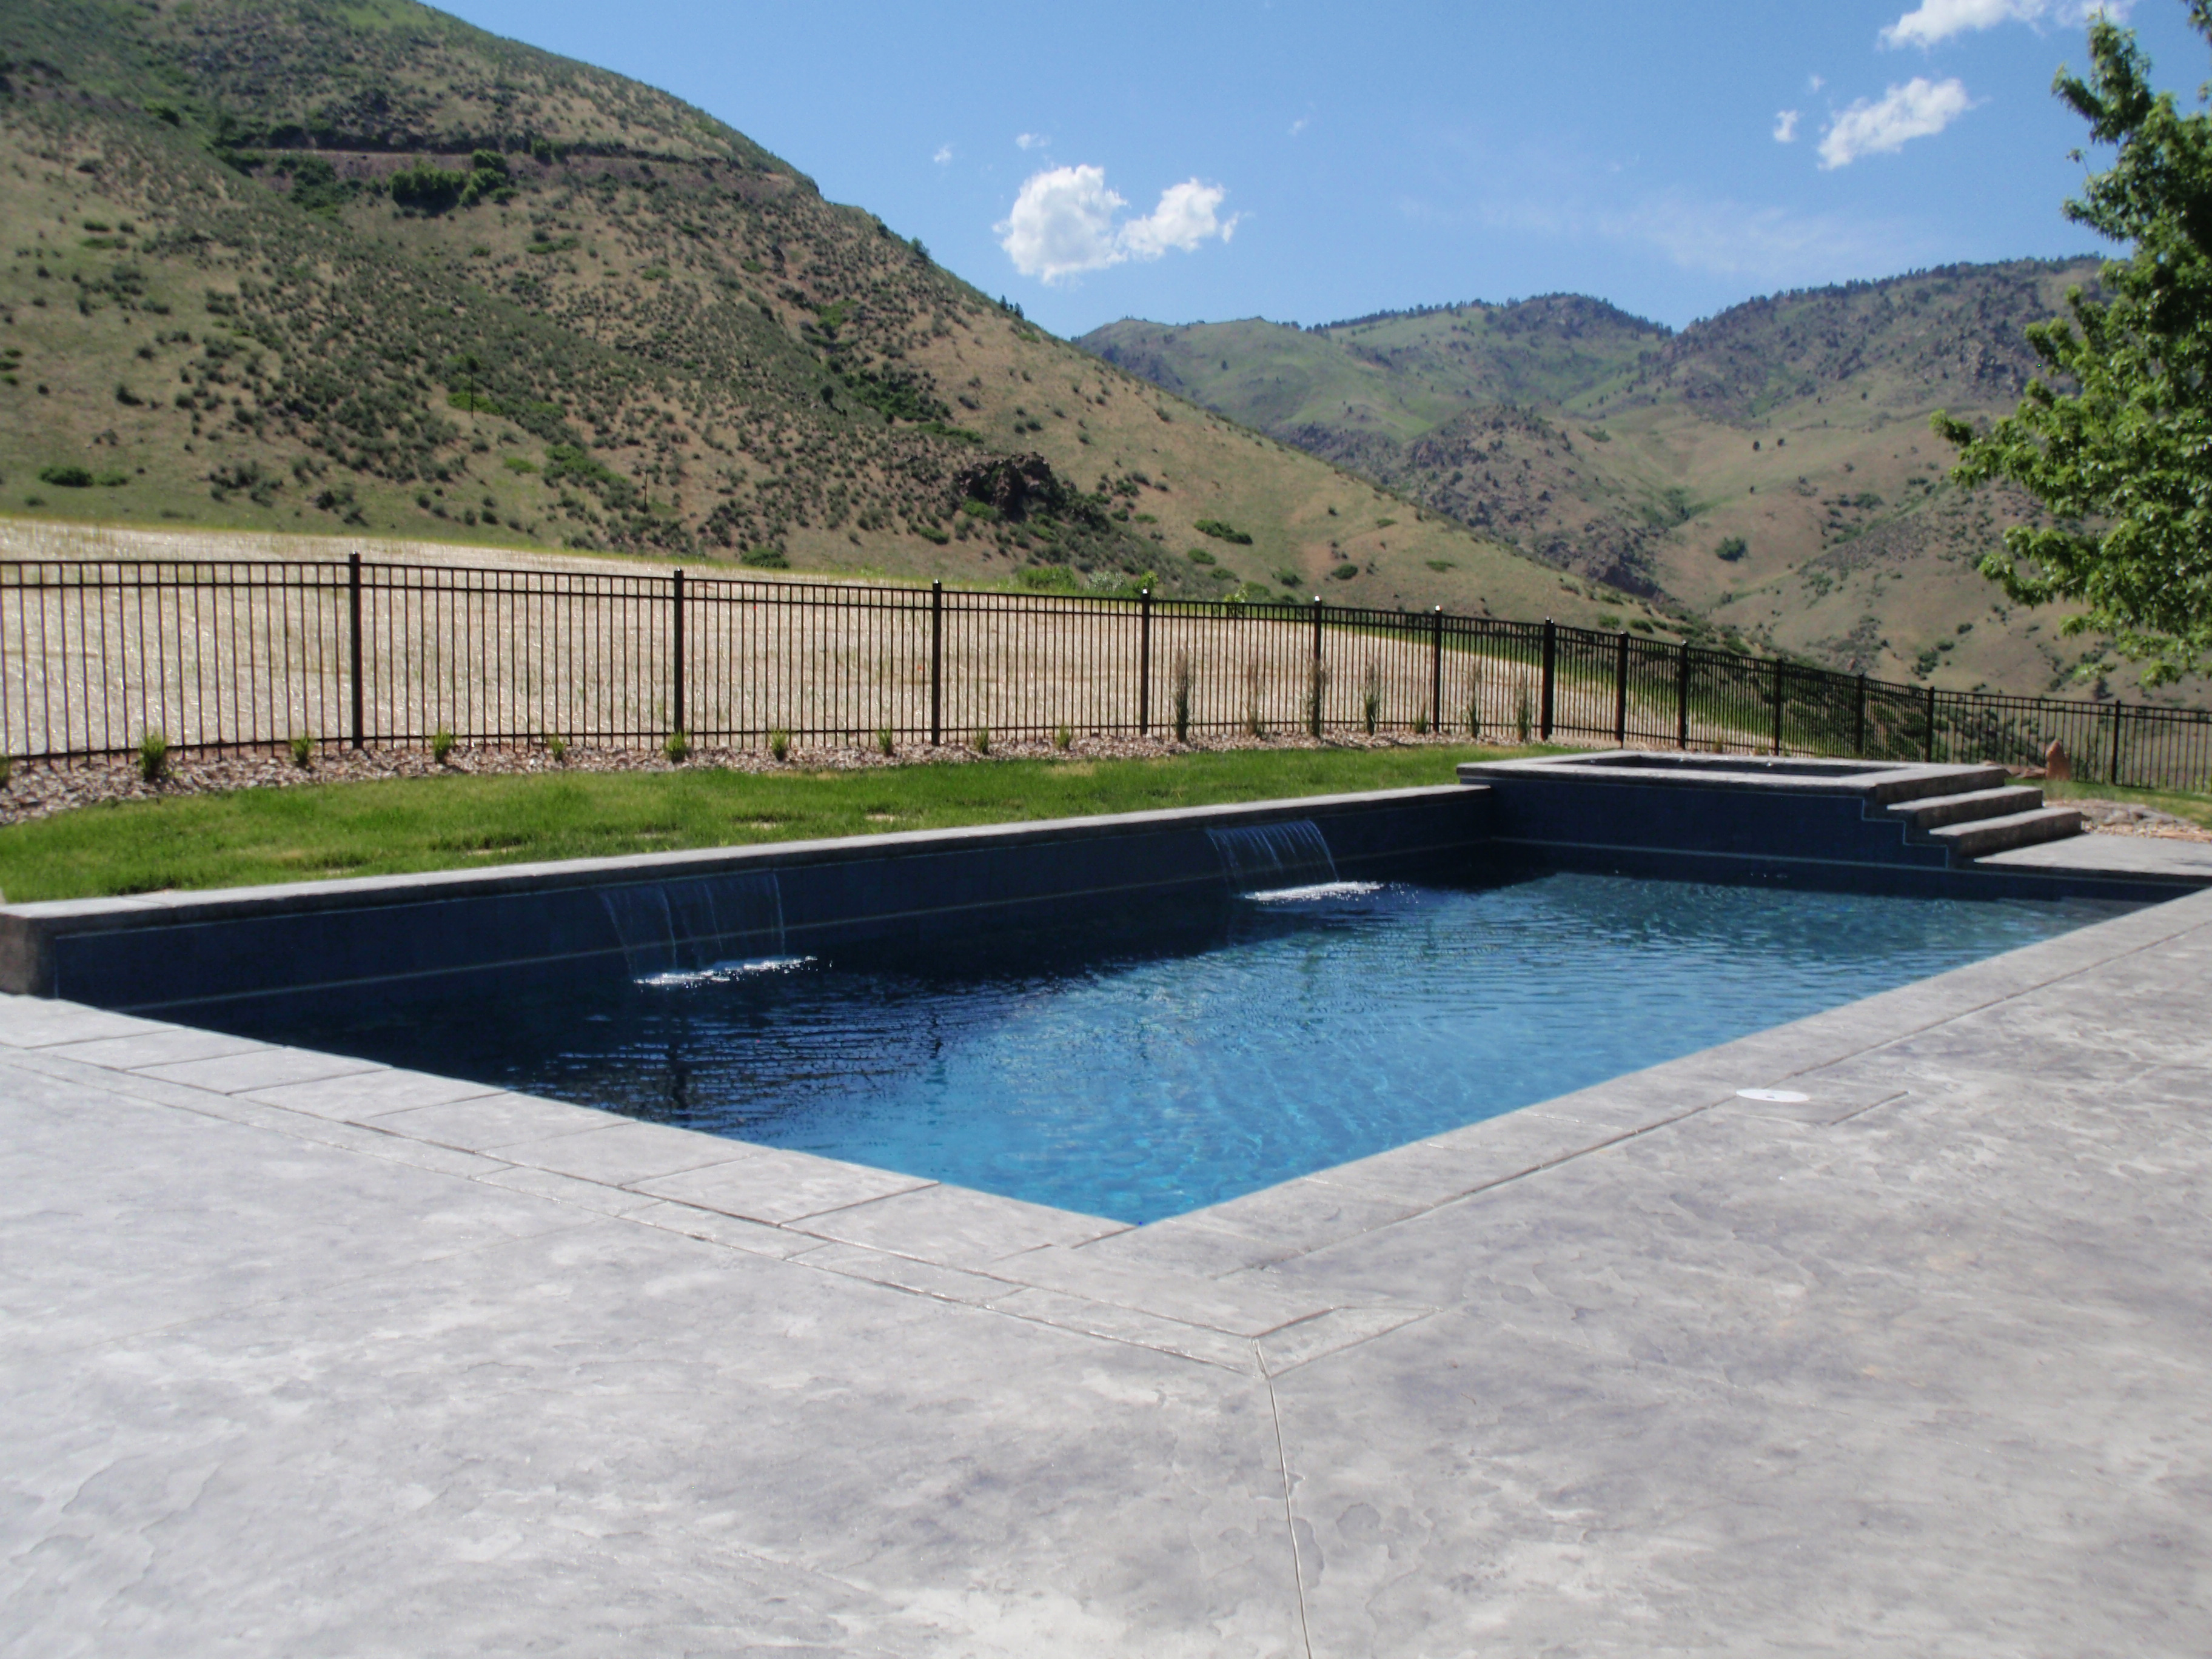 Swimming Pool And Spa In Golden, CO